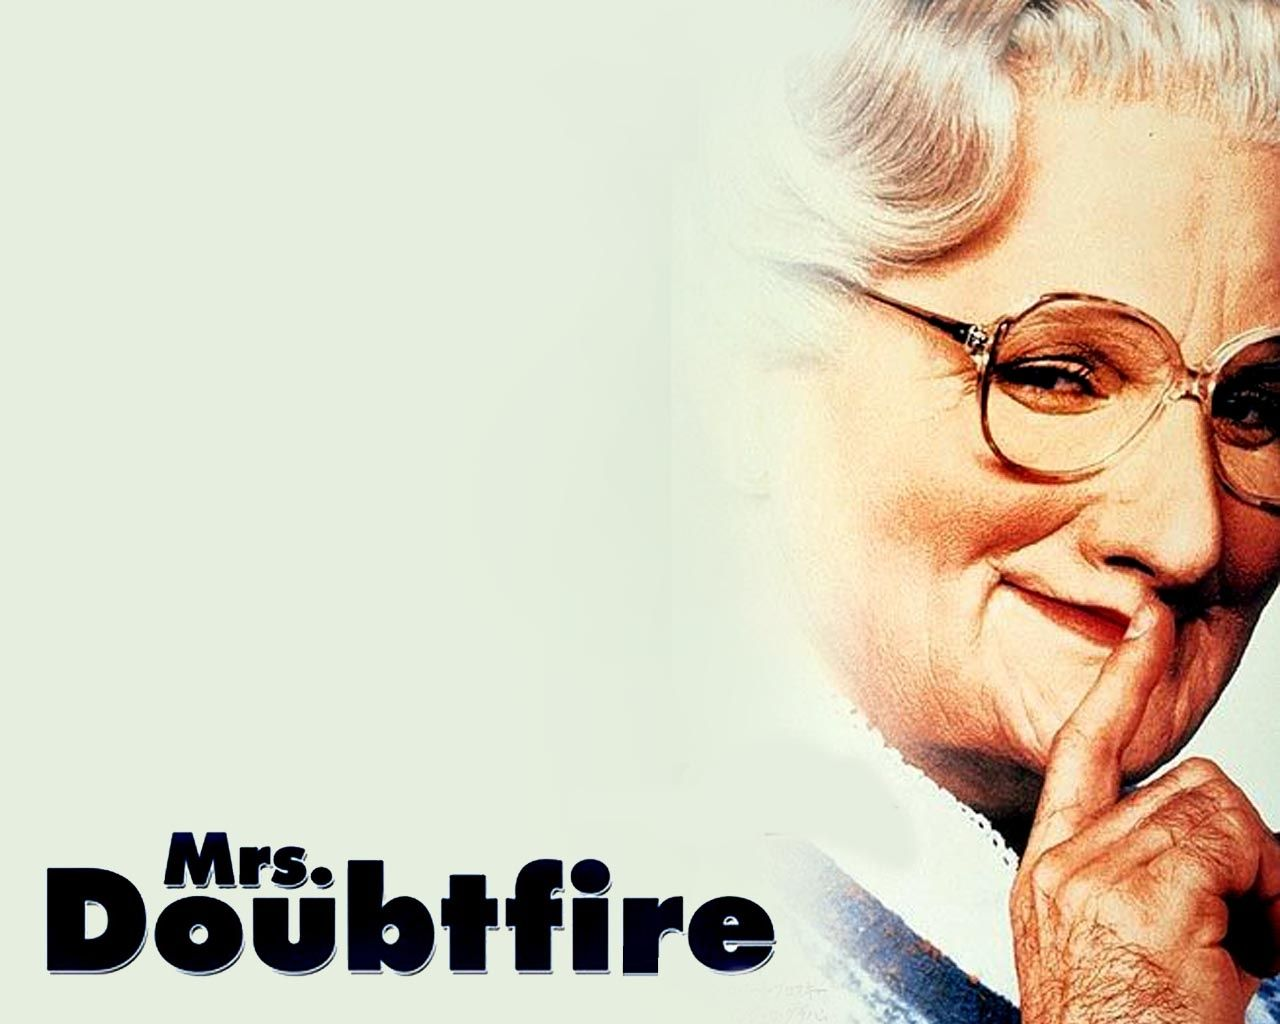 1Mrs Doubtfire robin williams